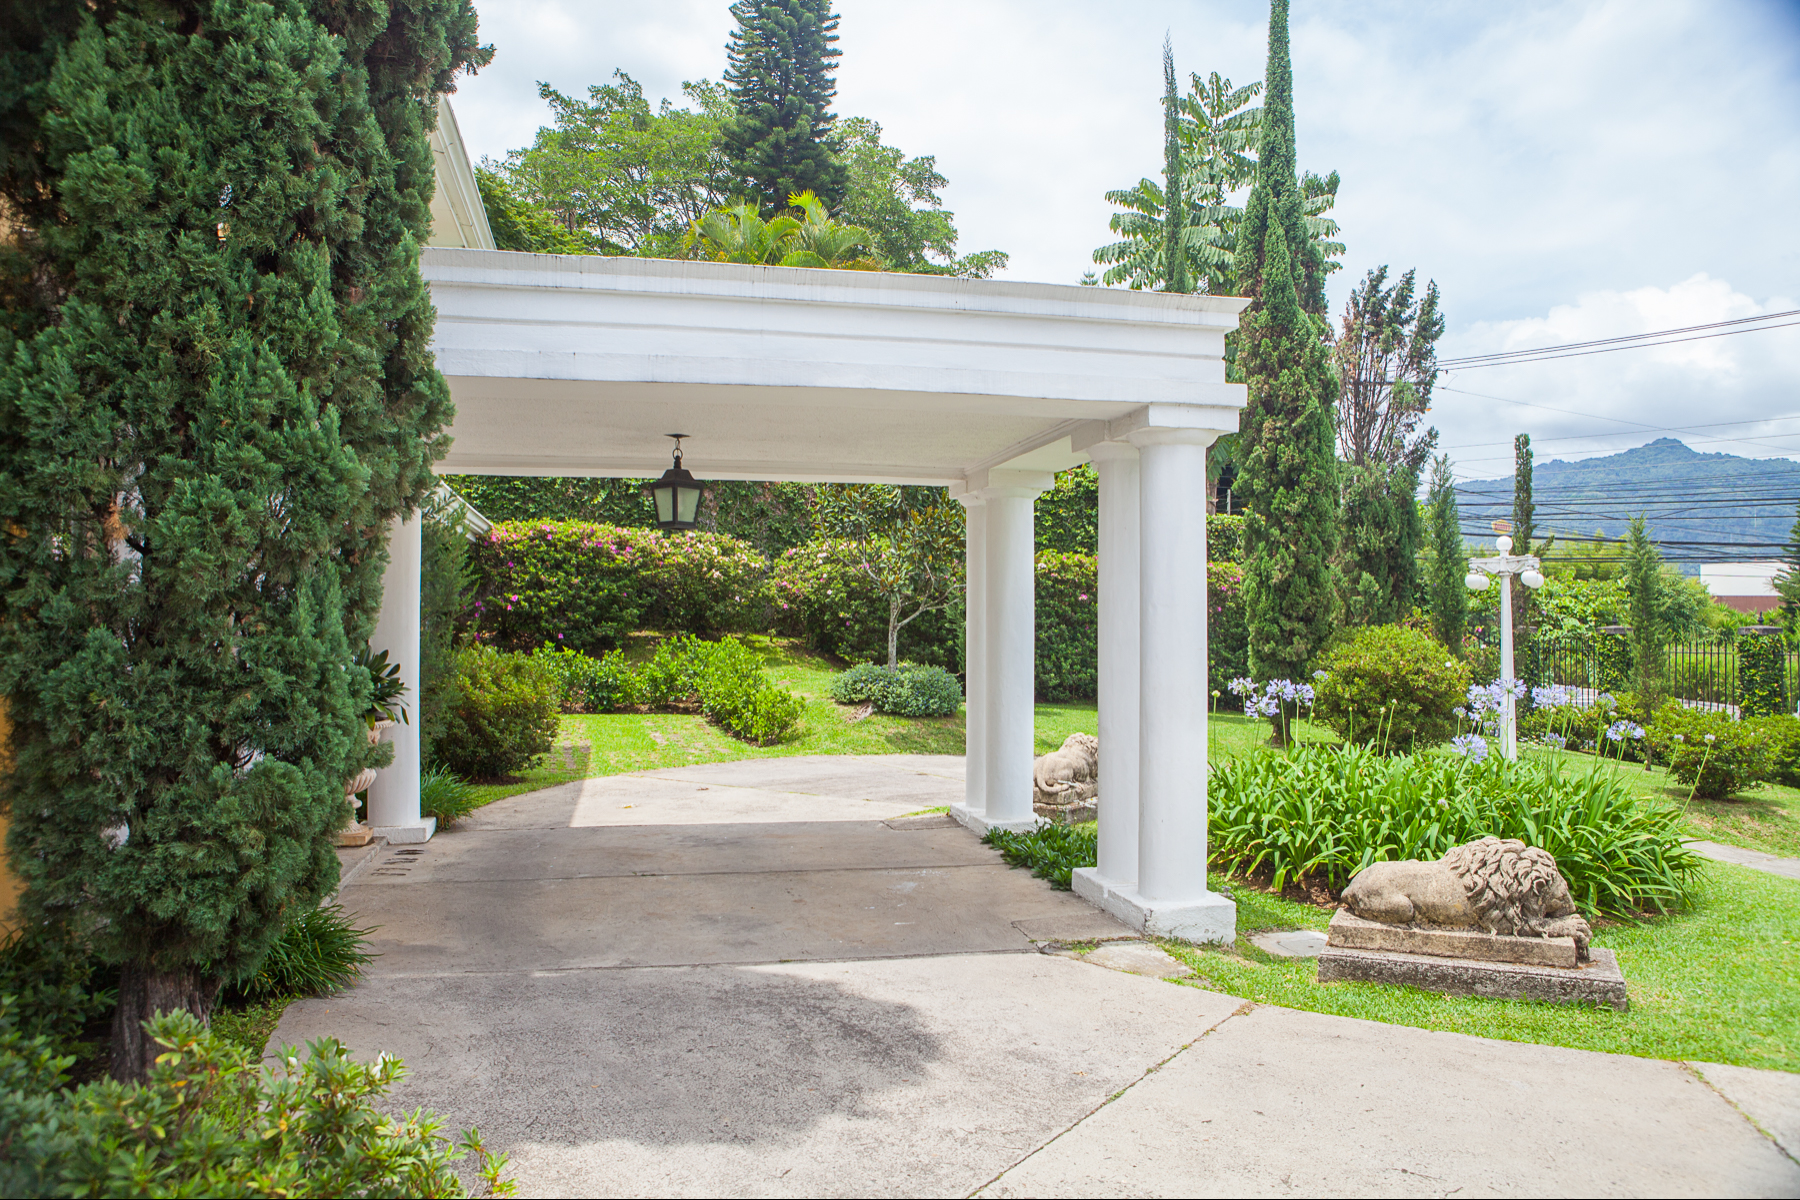 Additional photo for property listing at Spectacular Garden House Curridabat, San Jose Costa Rica